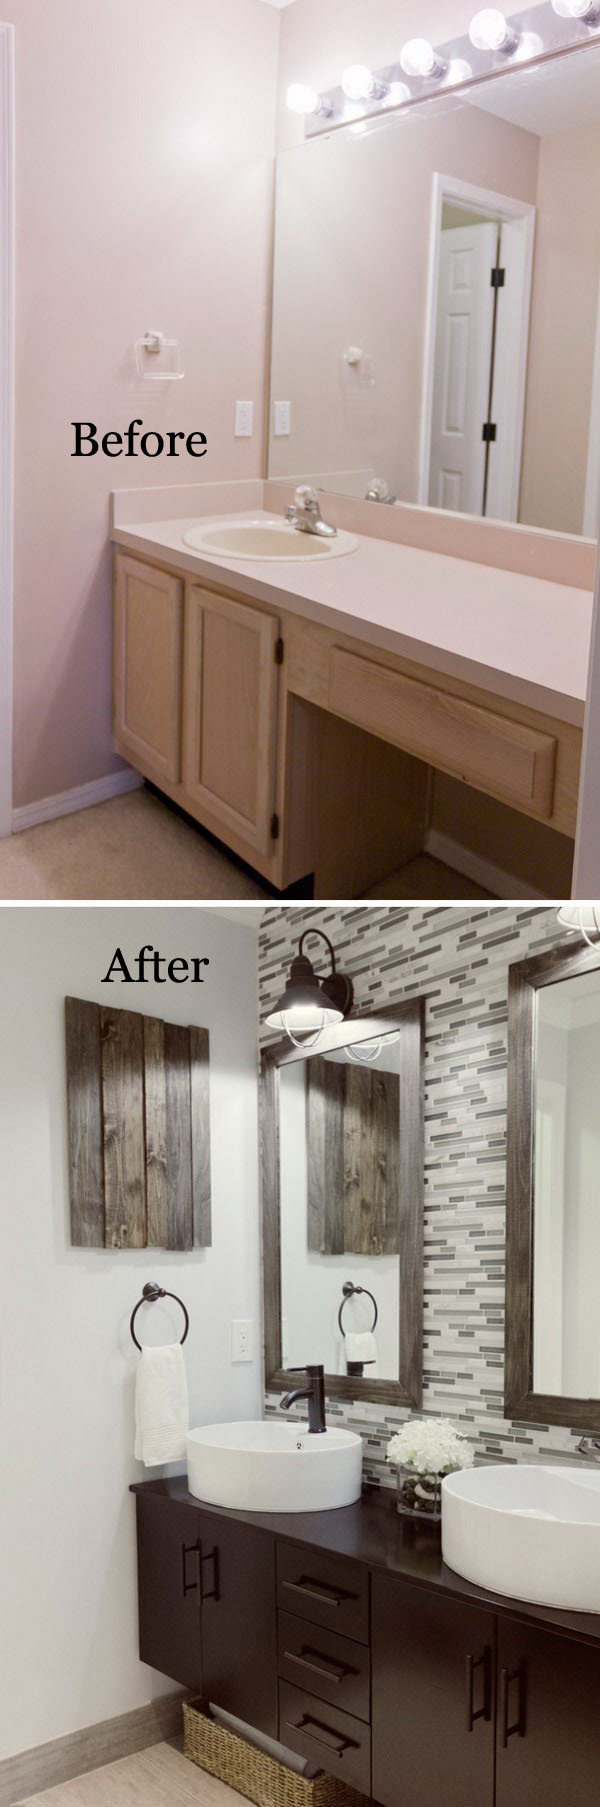 Before and after 20 awesome bathroom makeovers hative for Bath remodel pictures